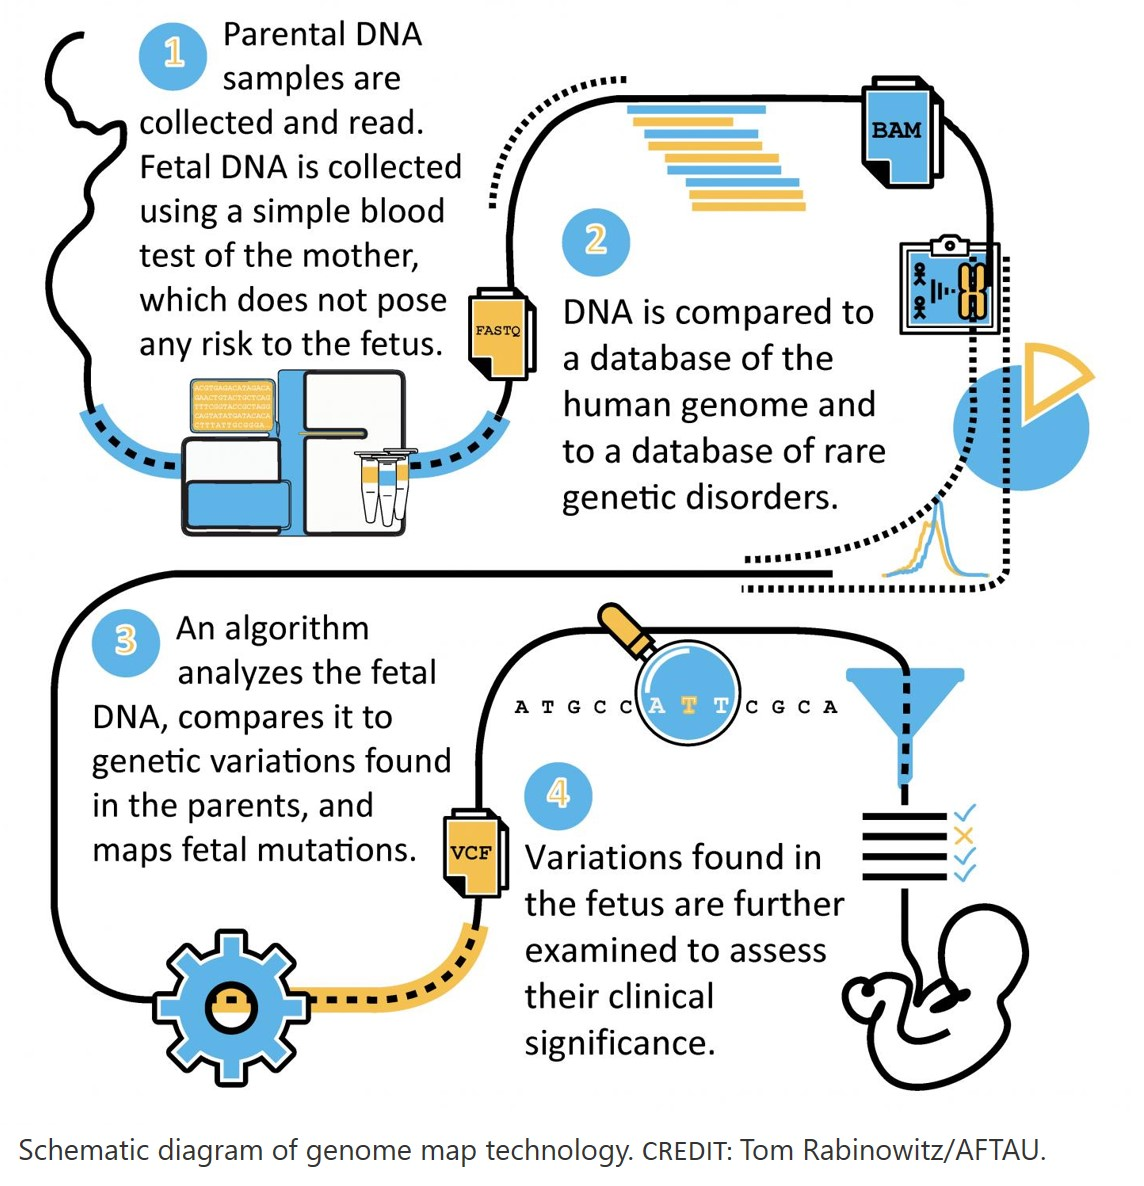 New blood test may map fetal genome for countless mutations